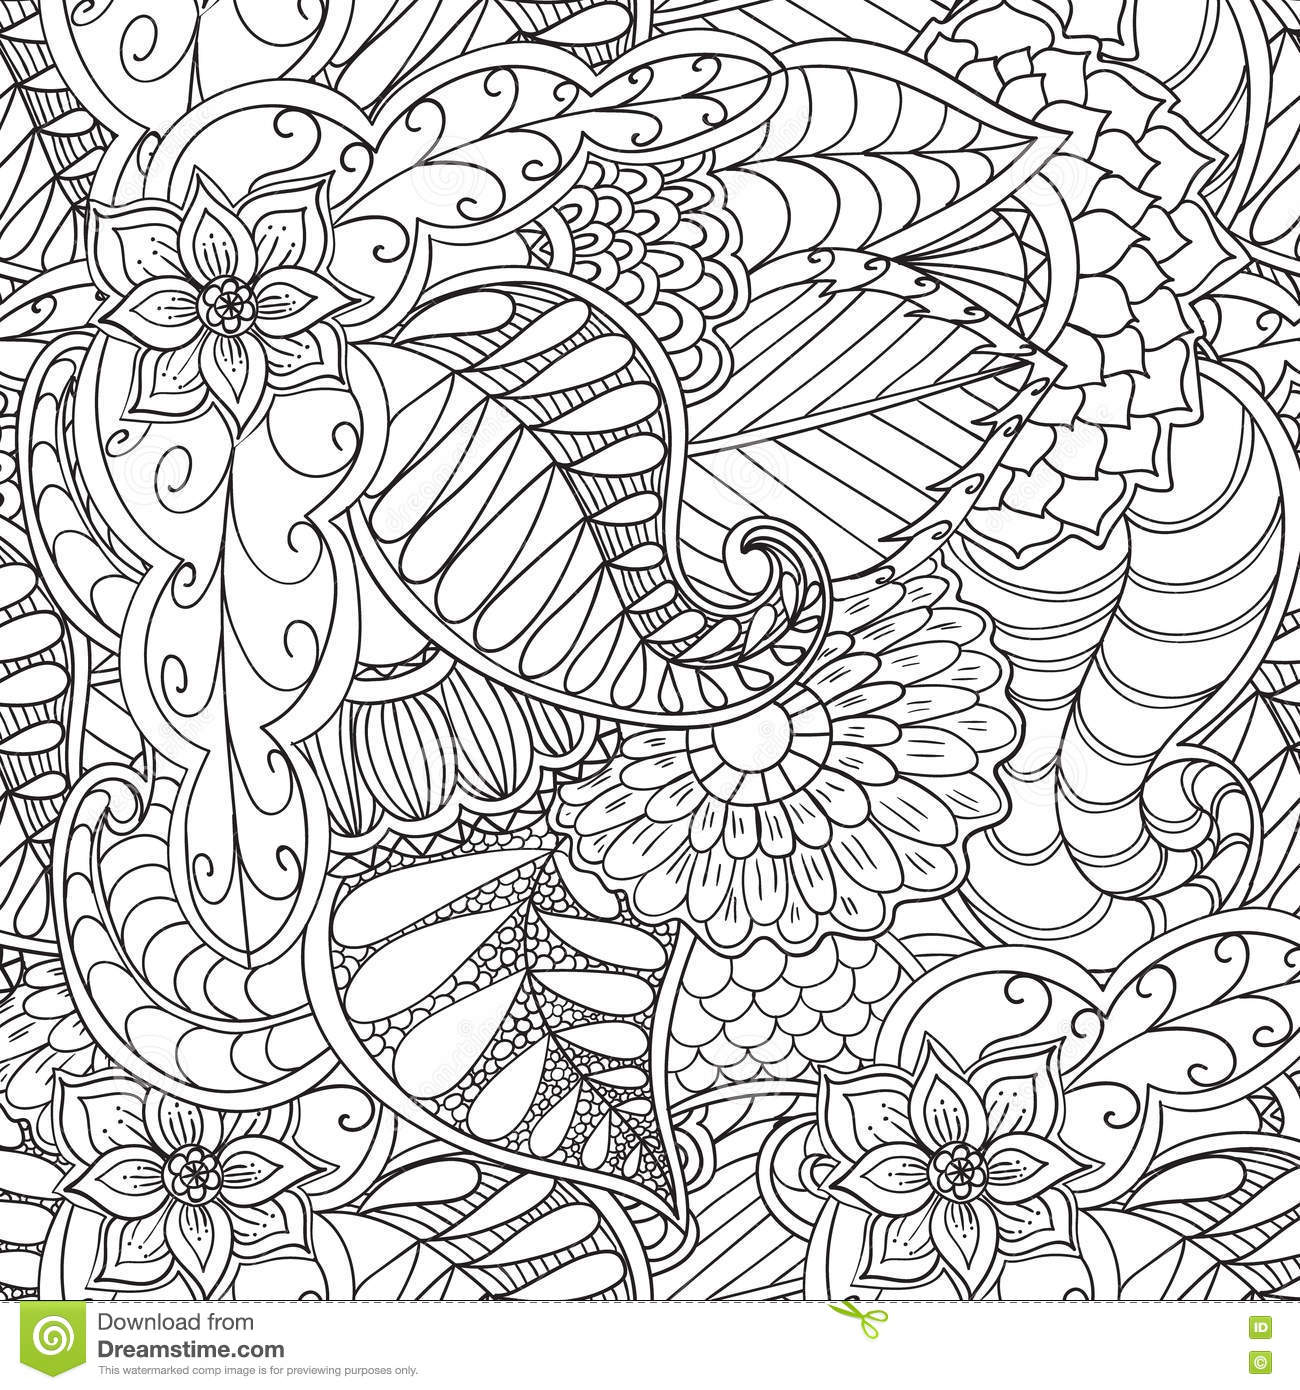 Hand Drawn Artistic Ethnic Ornamental